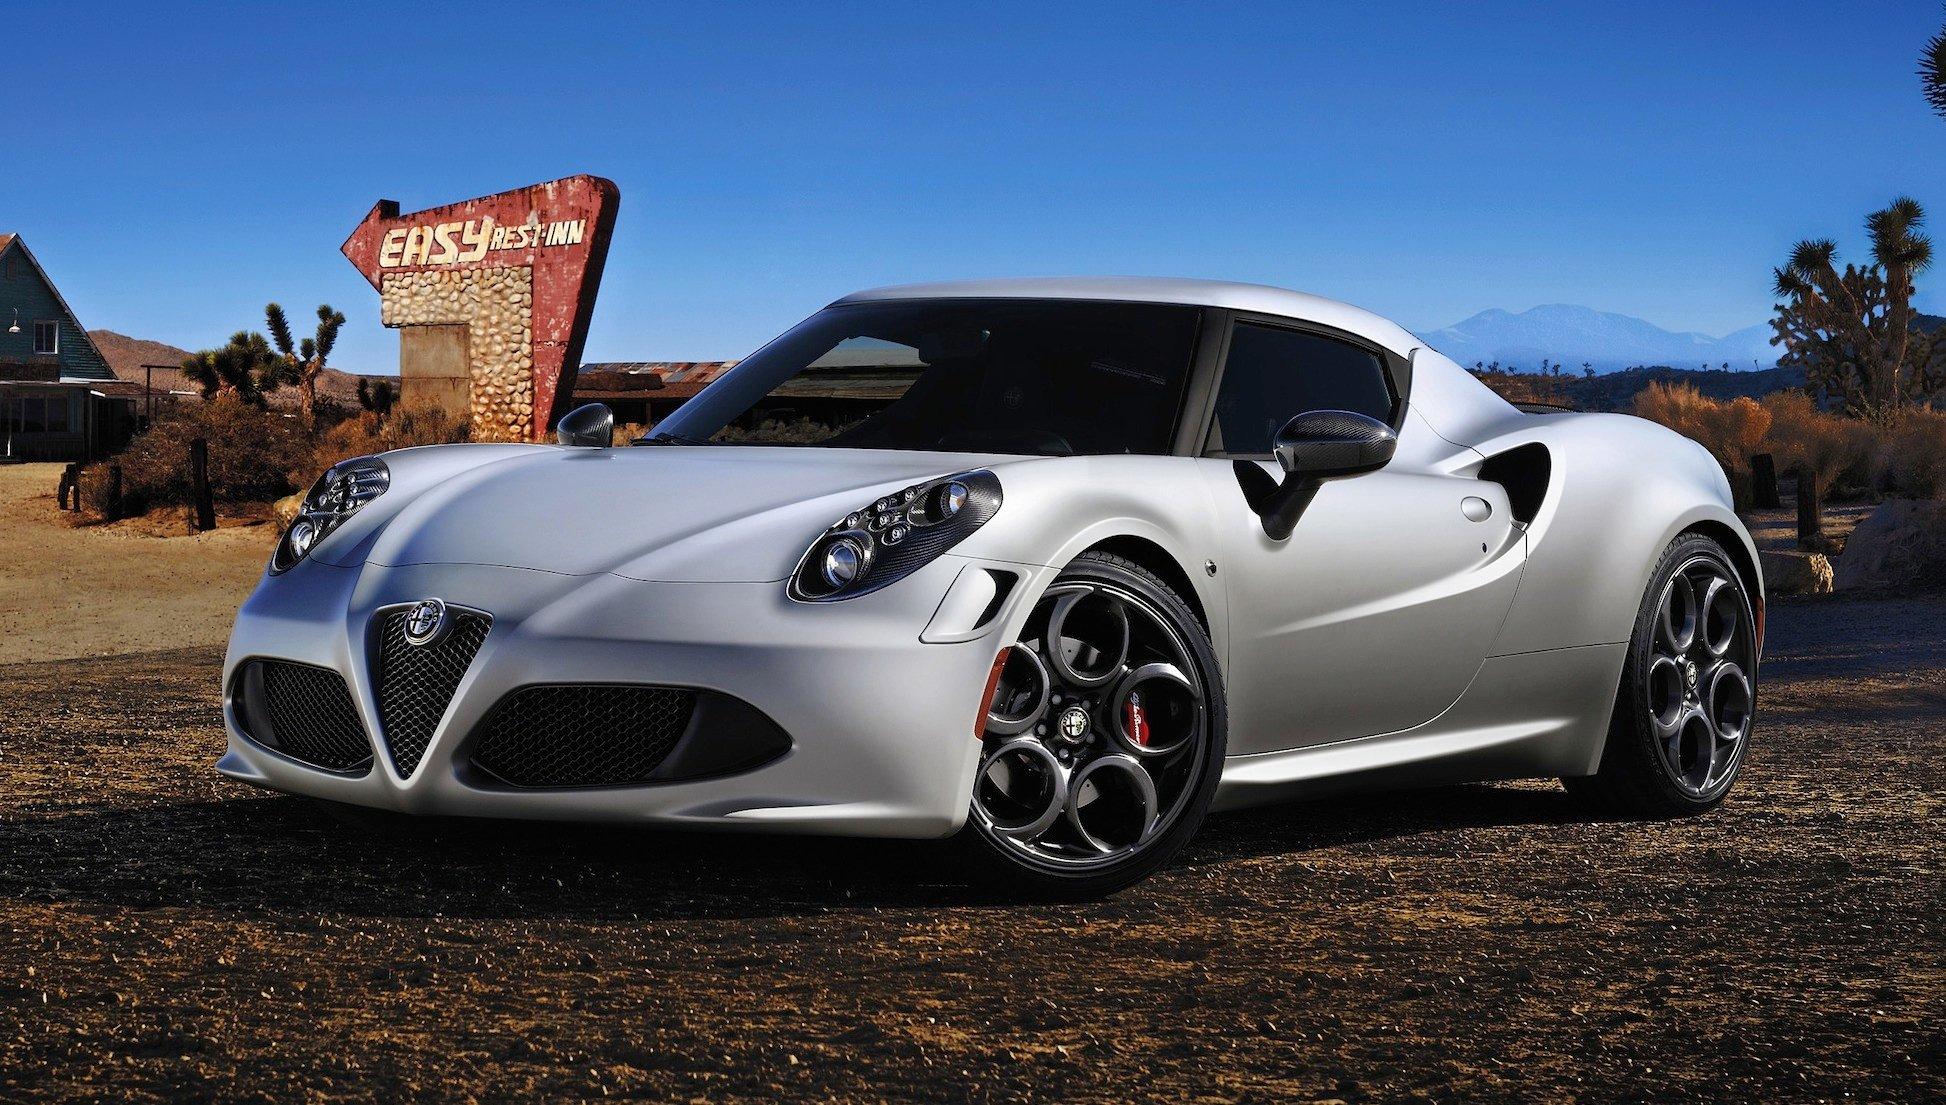 alfa romeo 4c to be sub 80 000 in australia photos 1 of 6. Black Bedroom Furniture Sets. Home Design Ideas